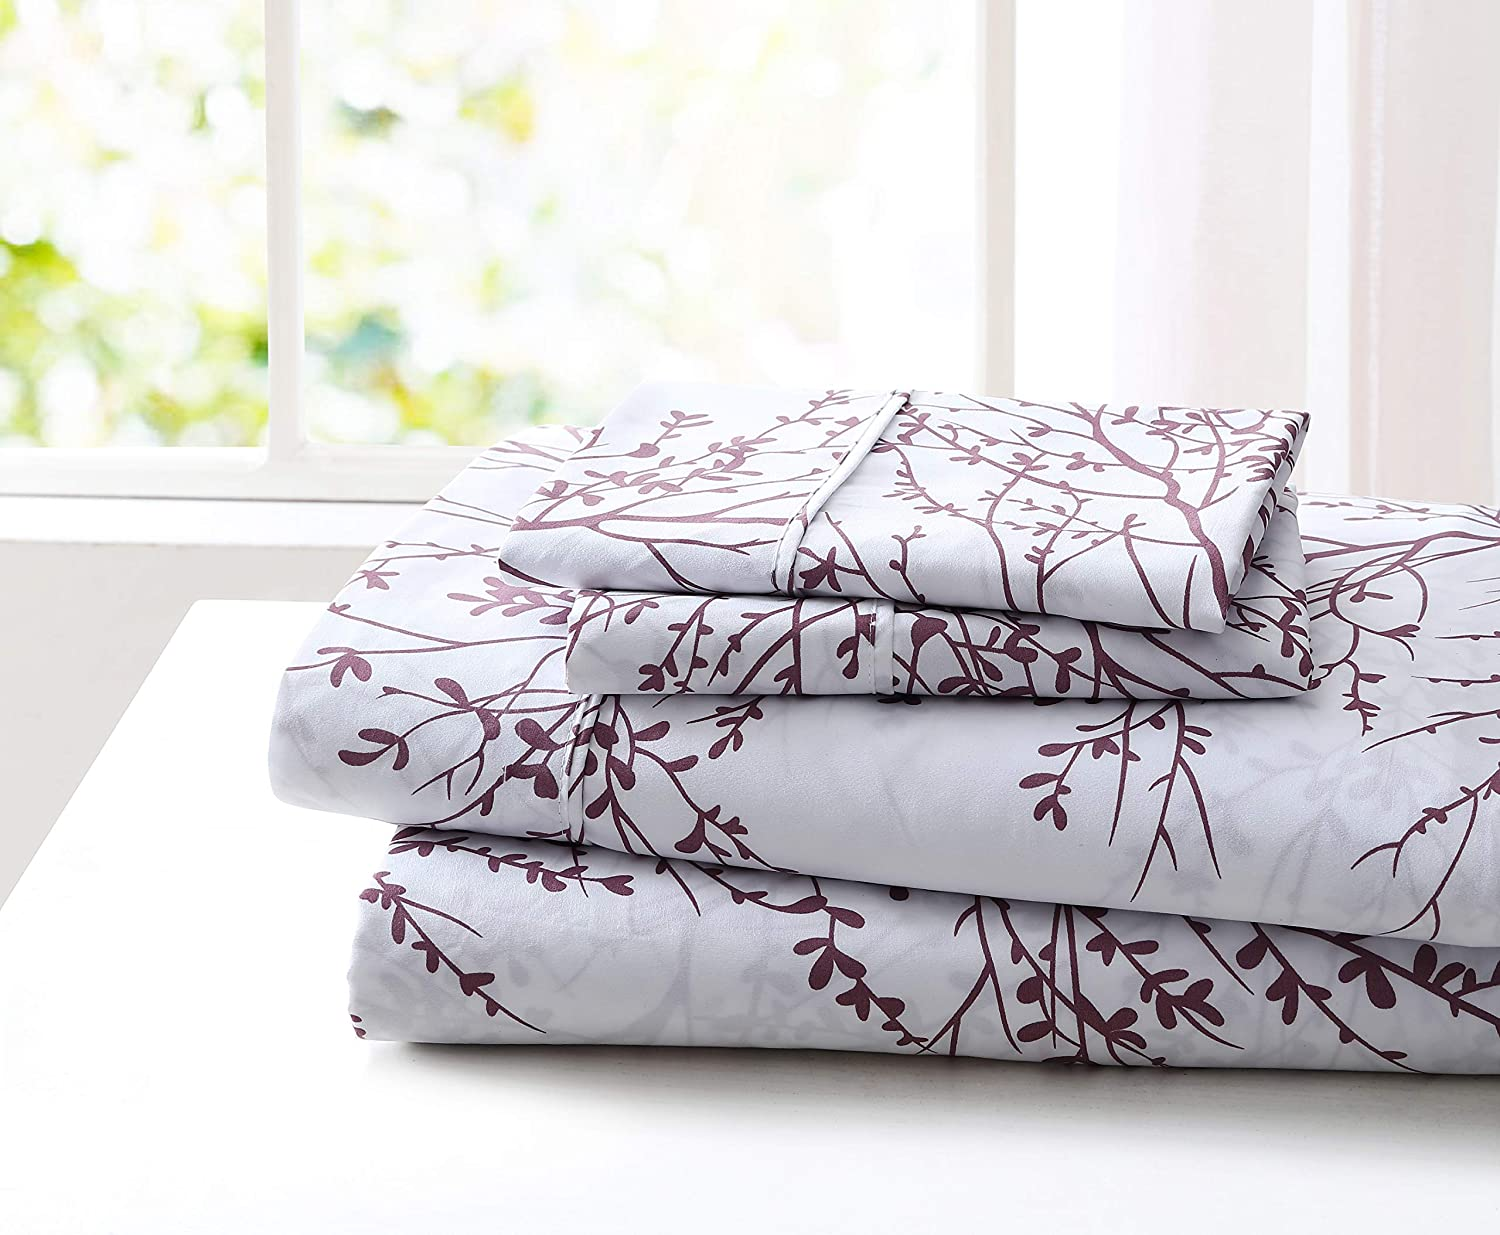 Spirit Linen Home 3pc Bed Sheet Set Printed Beautiful Foliage Design 1800 Bedding Soft Microfiber Sheet with Fitted Sheet and Pillowcases ( Twin, White Lilac)